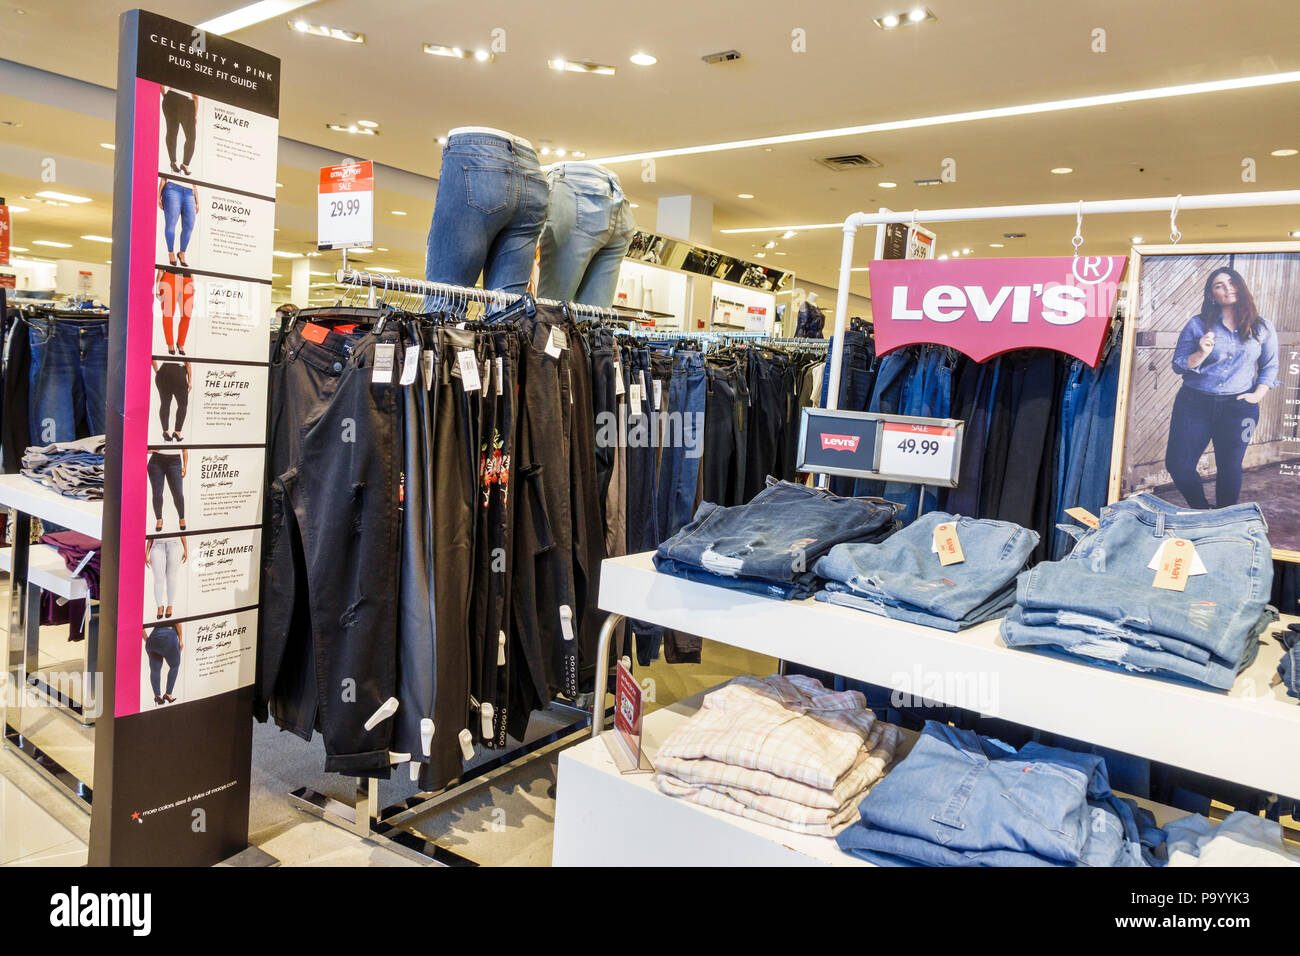 0e8fa09e2 Orlando Florida The Mall at Millenia shopping Macy s department store  women s clothing brand Levi s jeans display